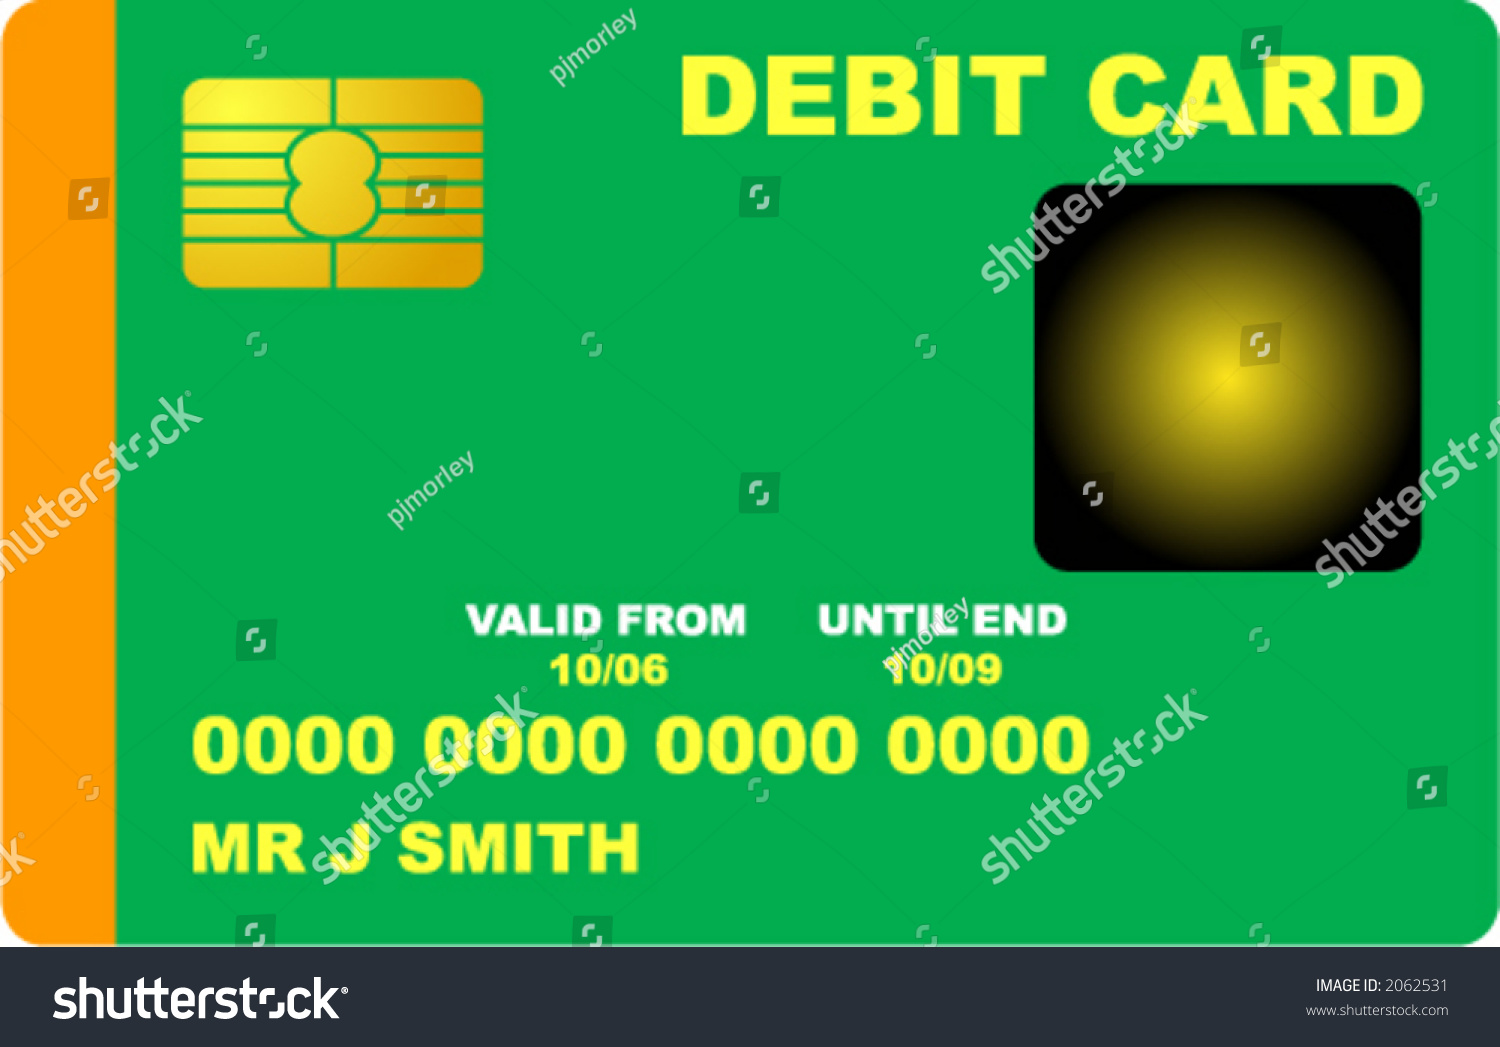 Debit card dating sites